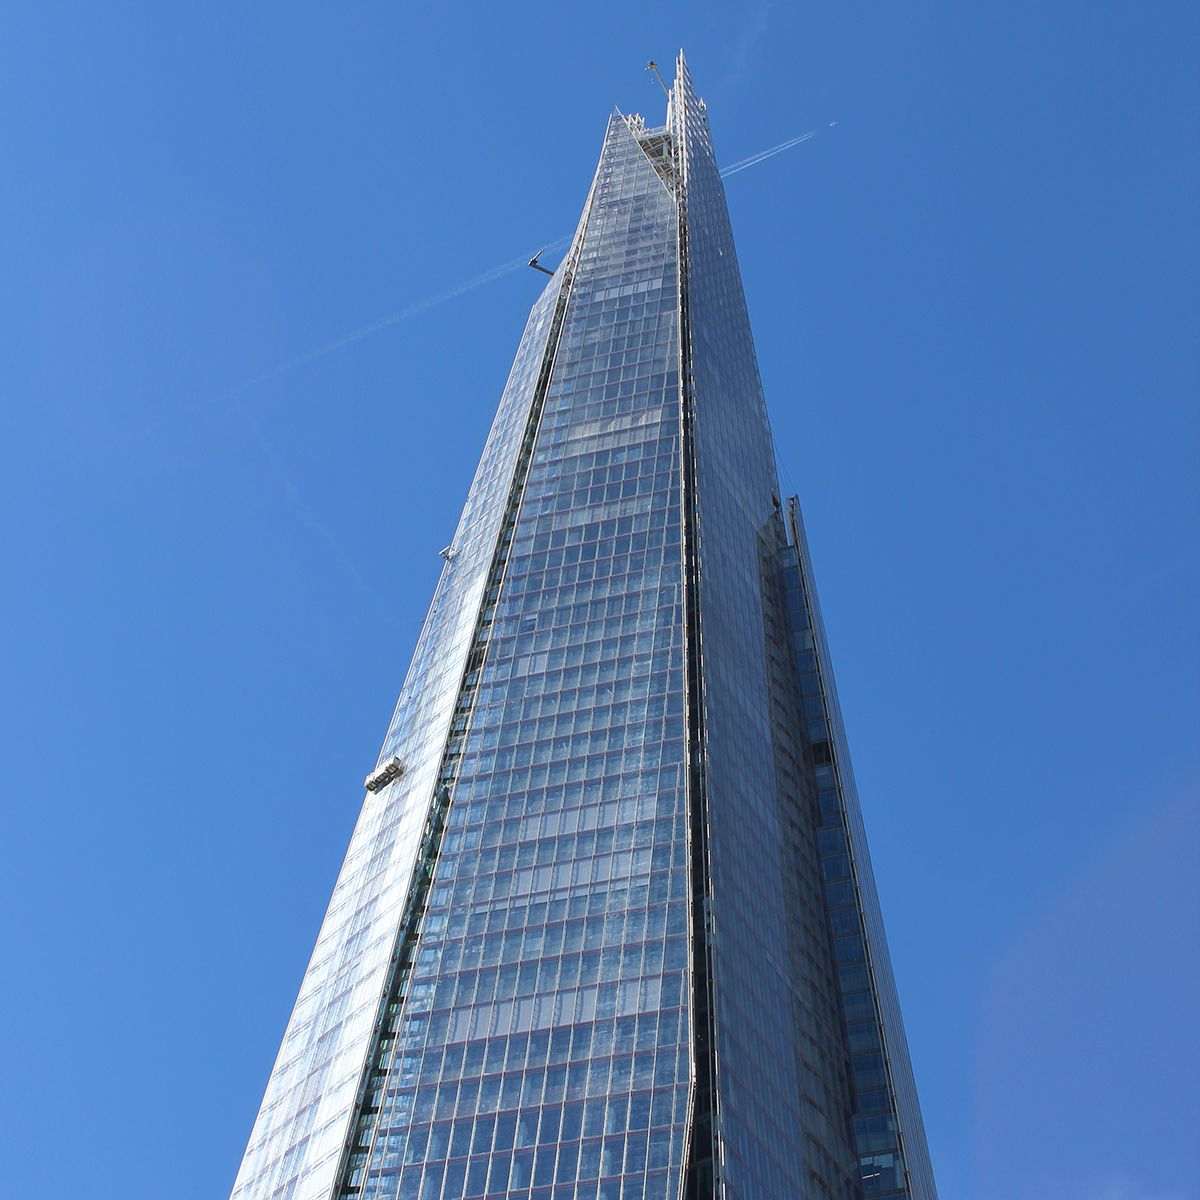 Birmingham Building Trade Towers Birmingham: The Shard Is Certainly Something To Behold! And Such A